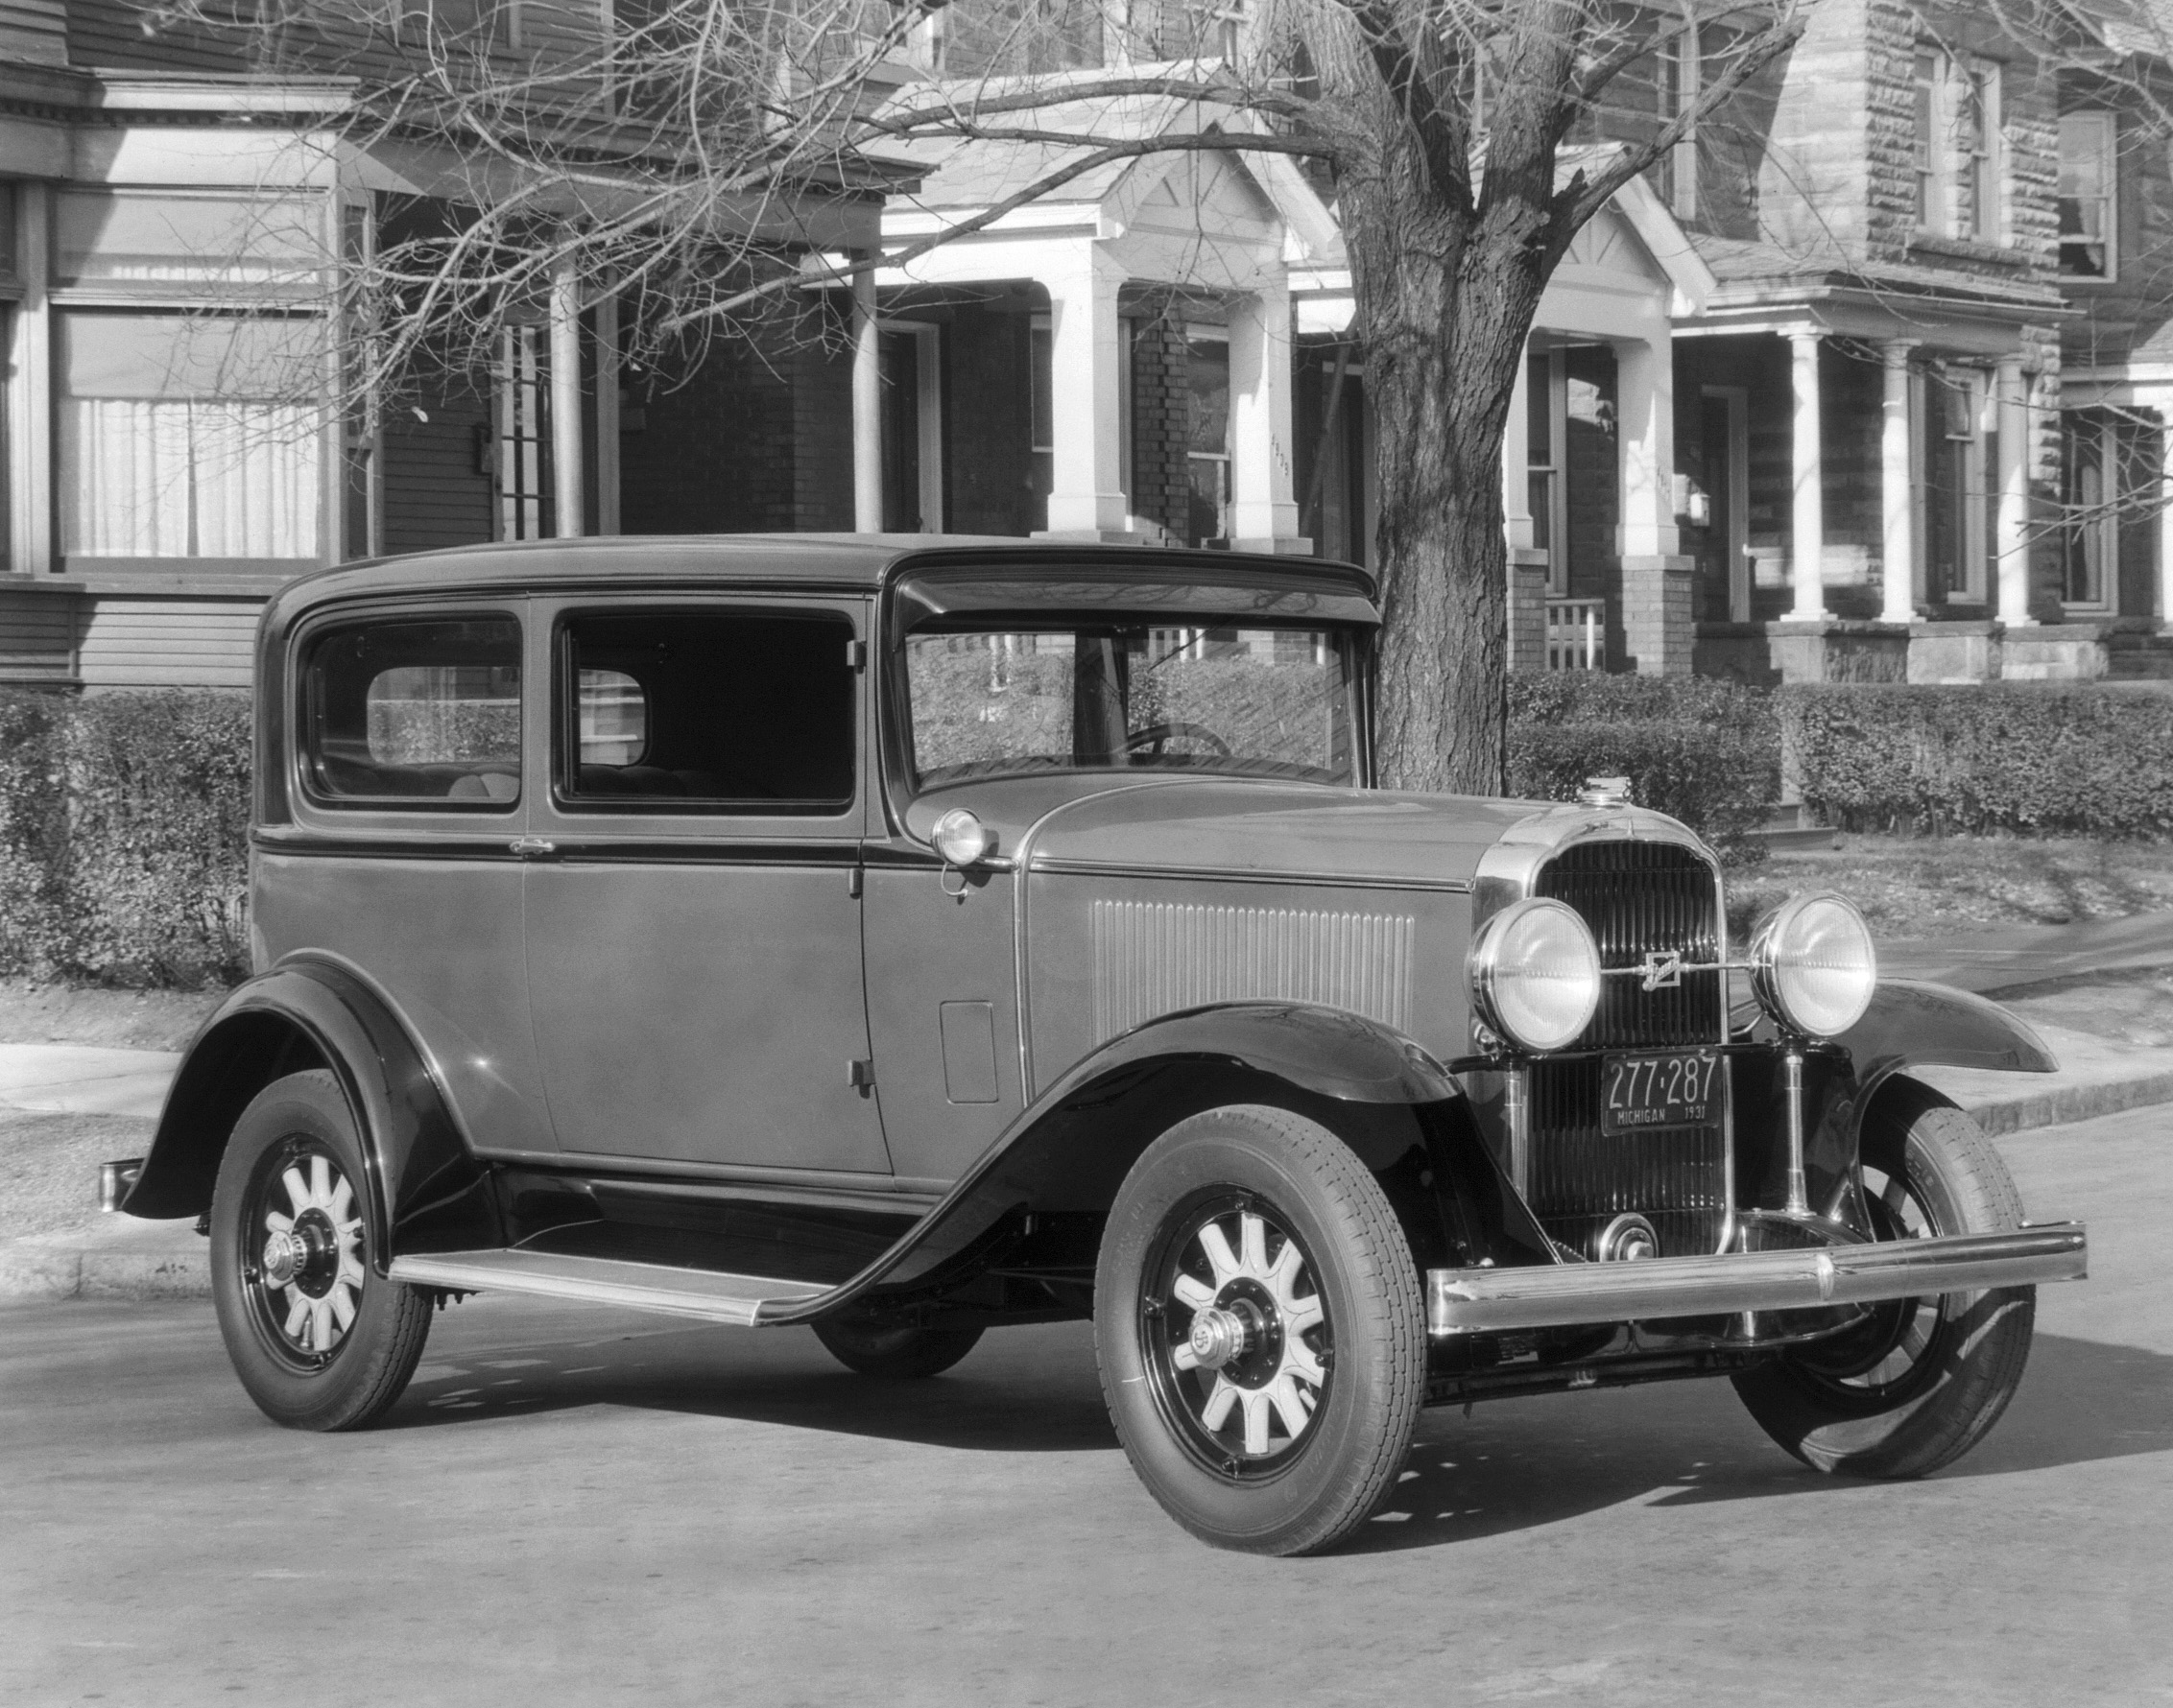 In 1931, Buick got powerful new eight-cylinder engines to go with a major design overhaul the year before. Models like this 50 Series Two Door Sedan helped improve Buick's image during the Great Depression.